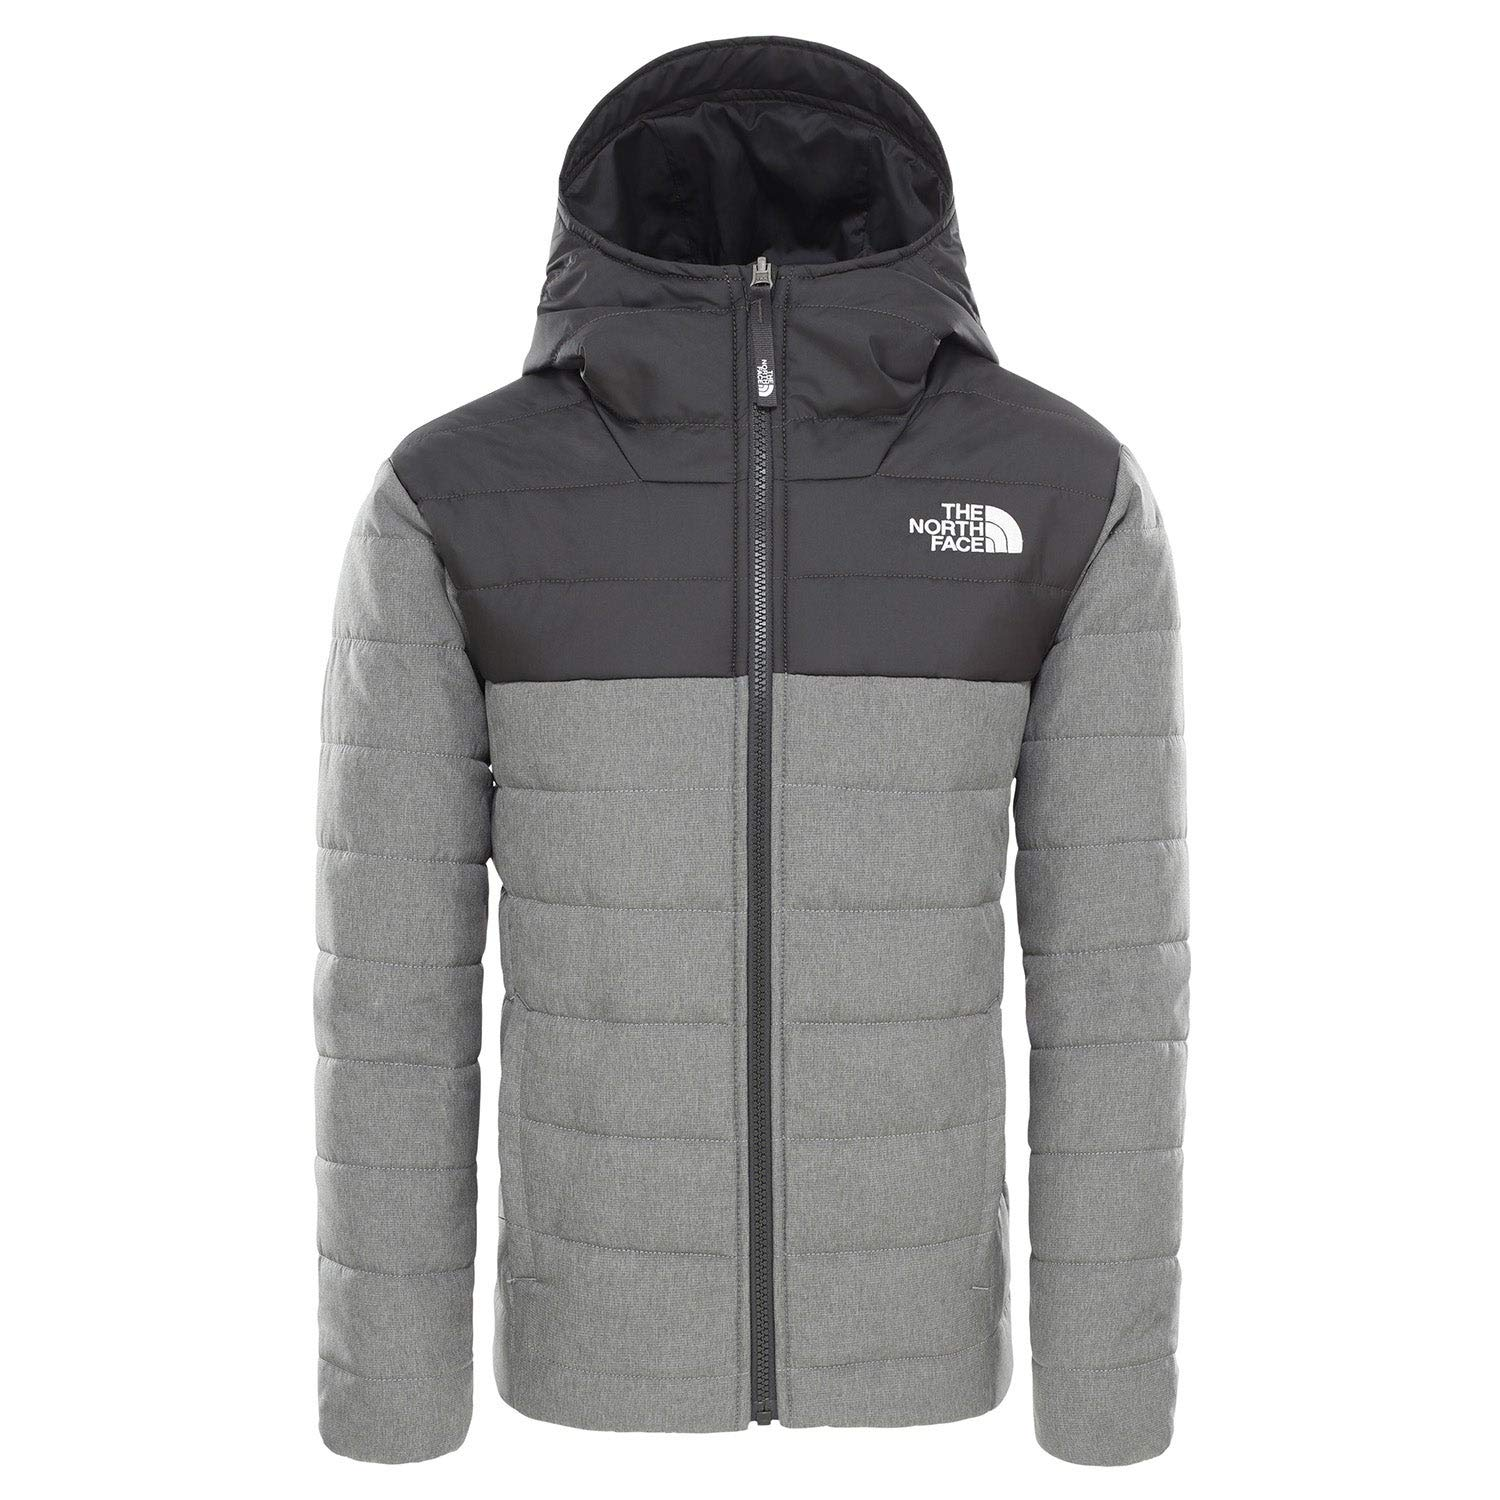 The North Face Little Kids/Big Kids Boys' Reversible Perrito Jacket, TNF Medium Grey Heather, Medium by The North Face